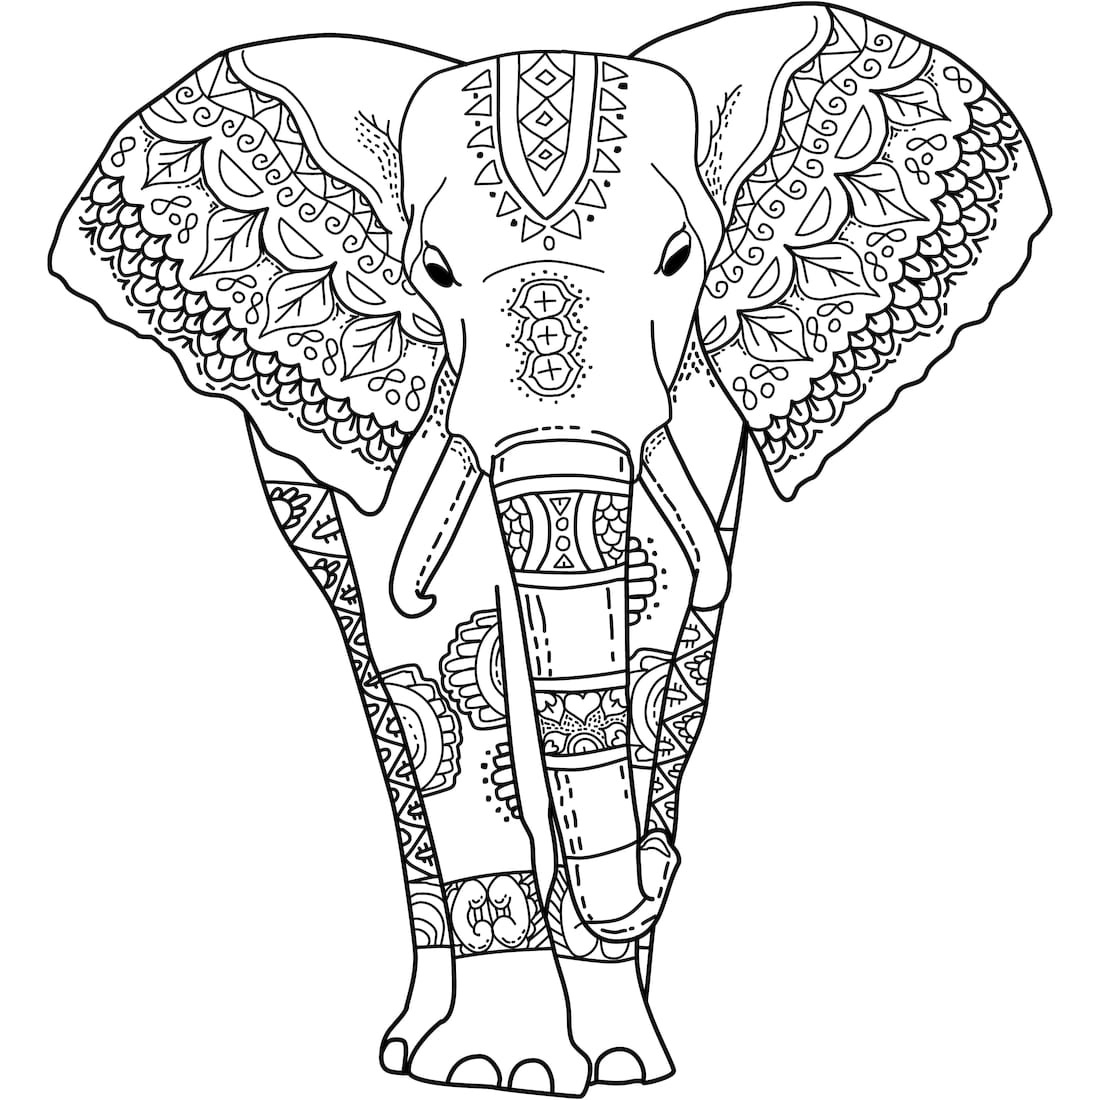 printable elephant coloring pages elephant shape with patterns elephants adult coloring pages elephant pages printable coloring